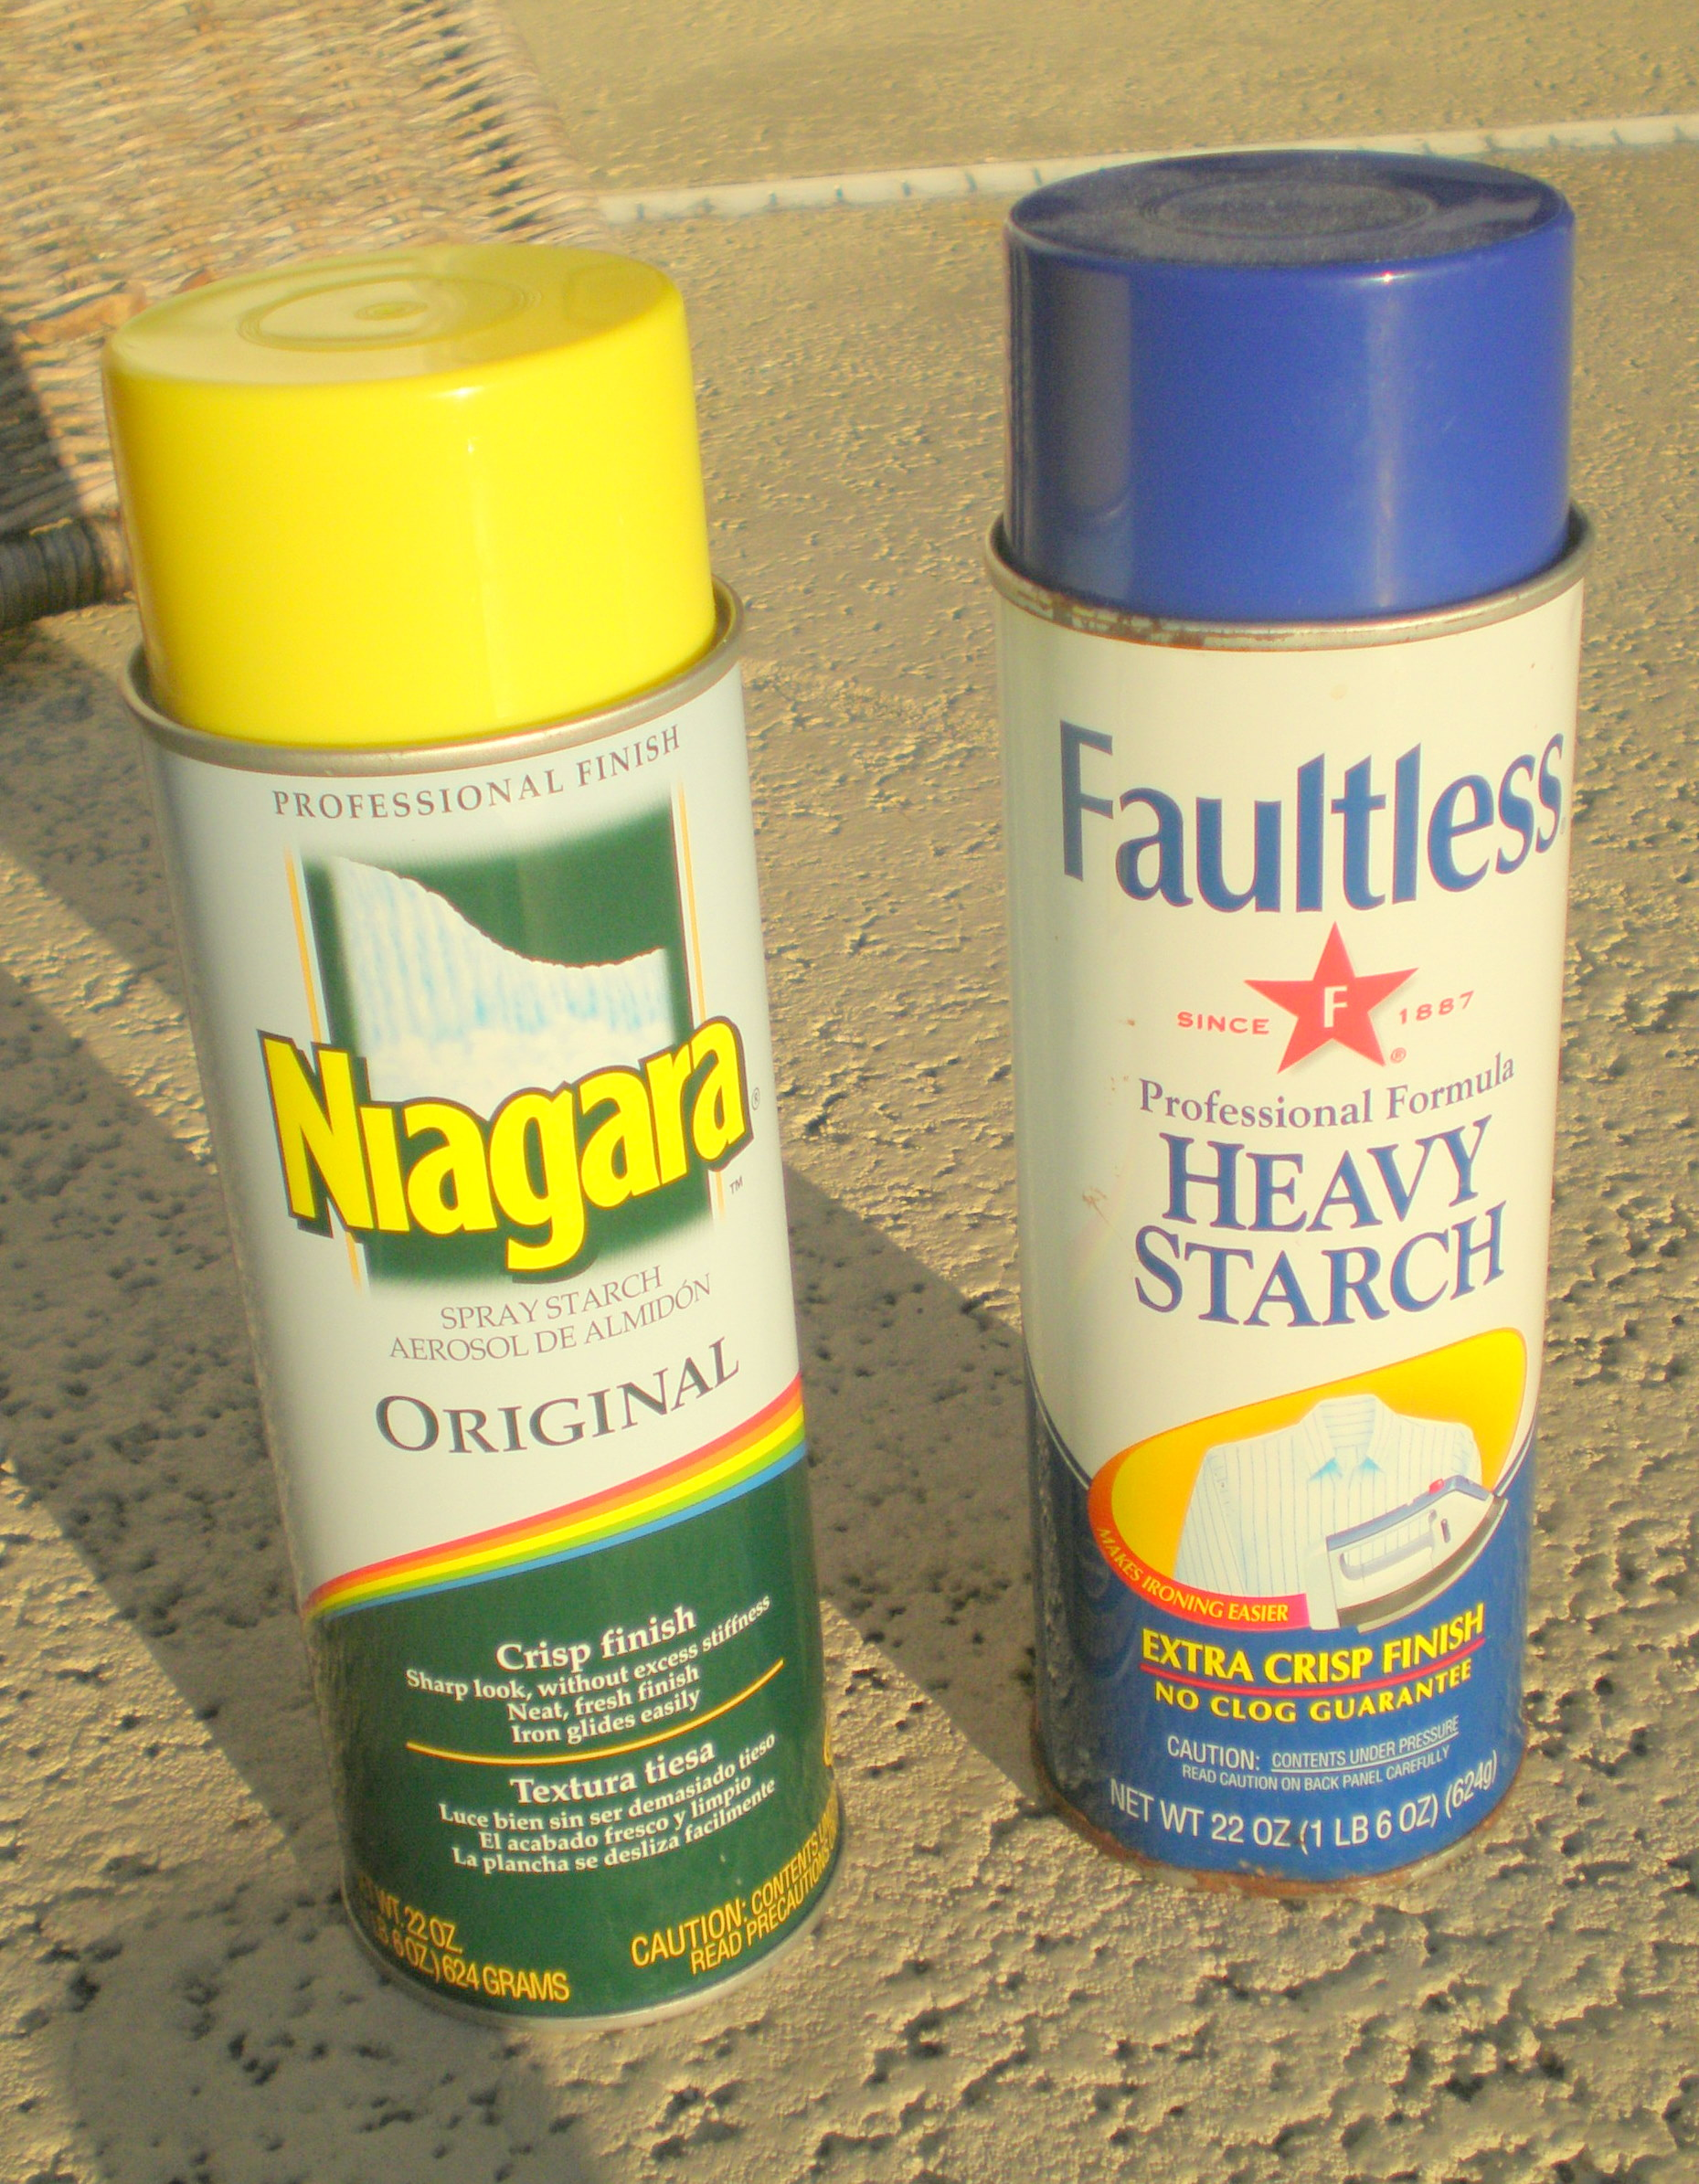 Spray Starch spray cans